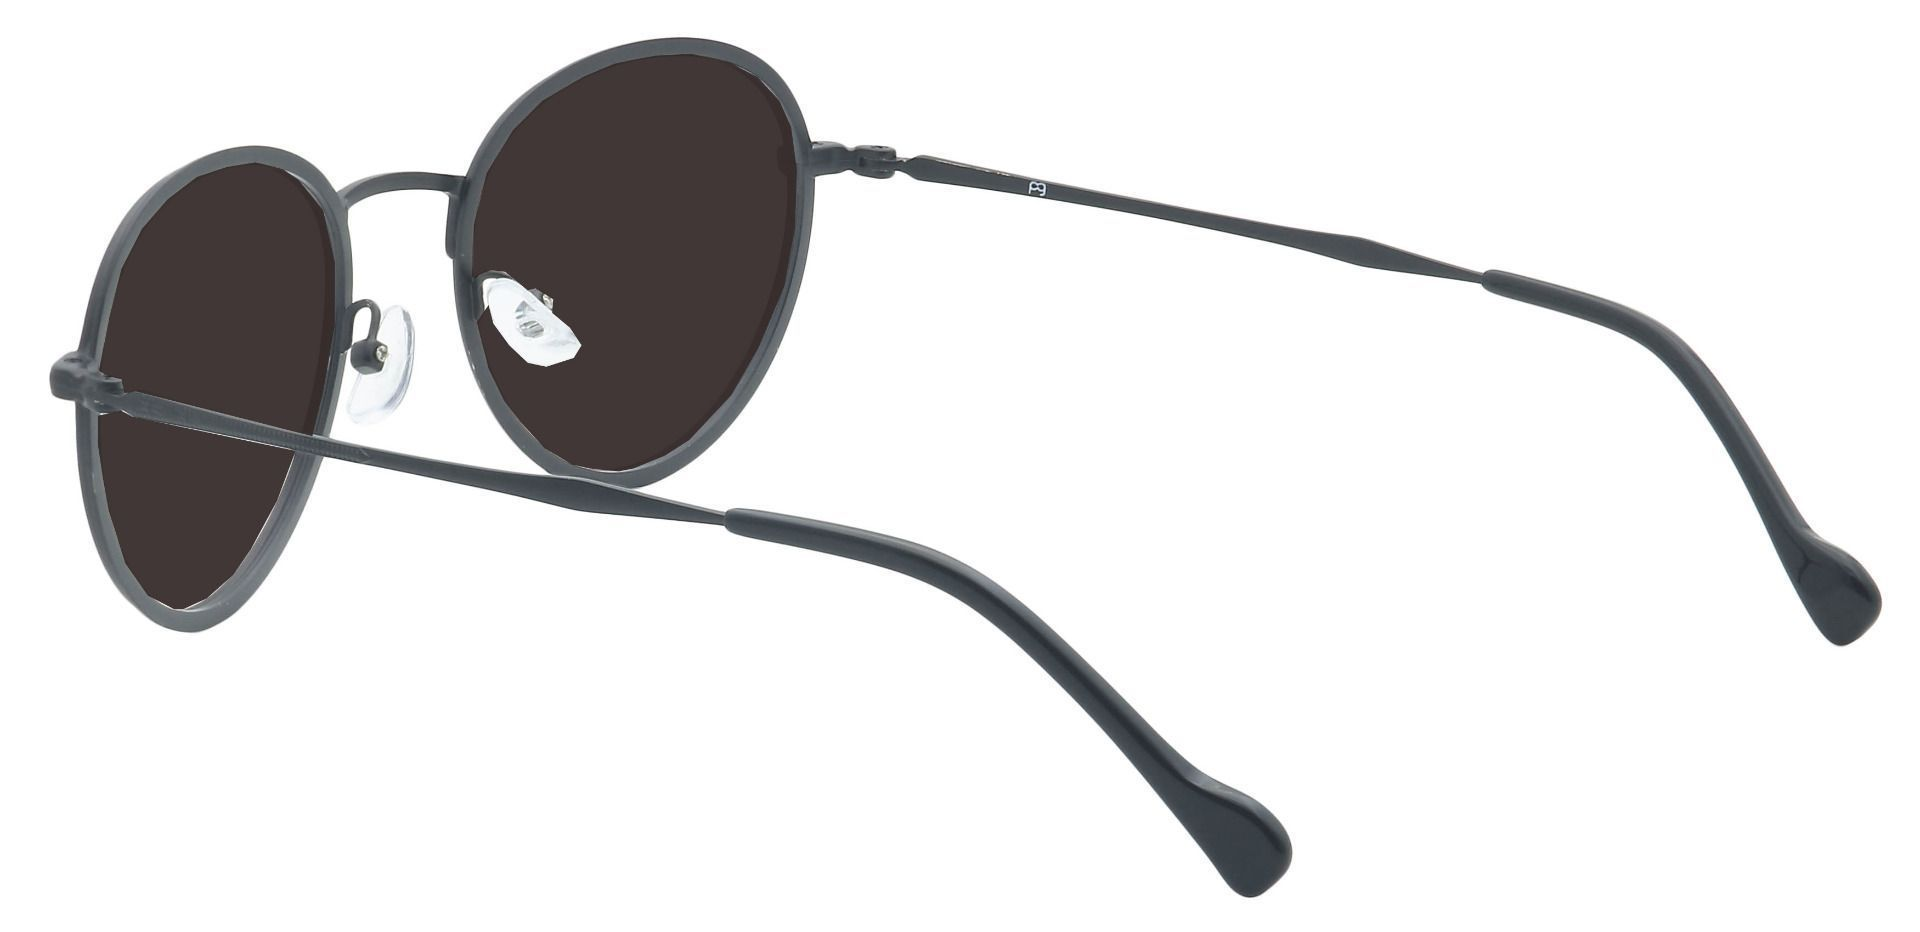 Page Oval Prescription Sunglasses - Black Frame With Gray Lenses